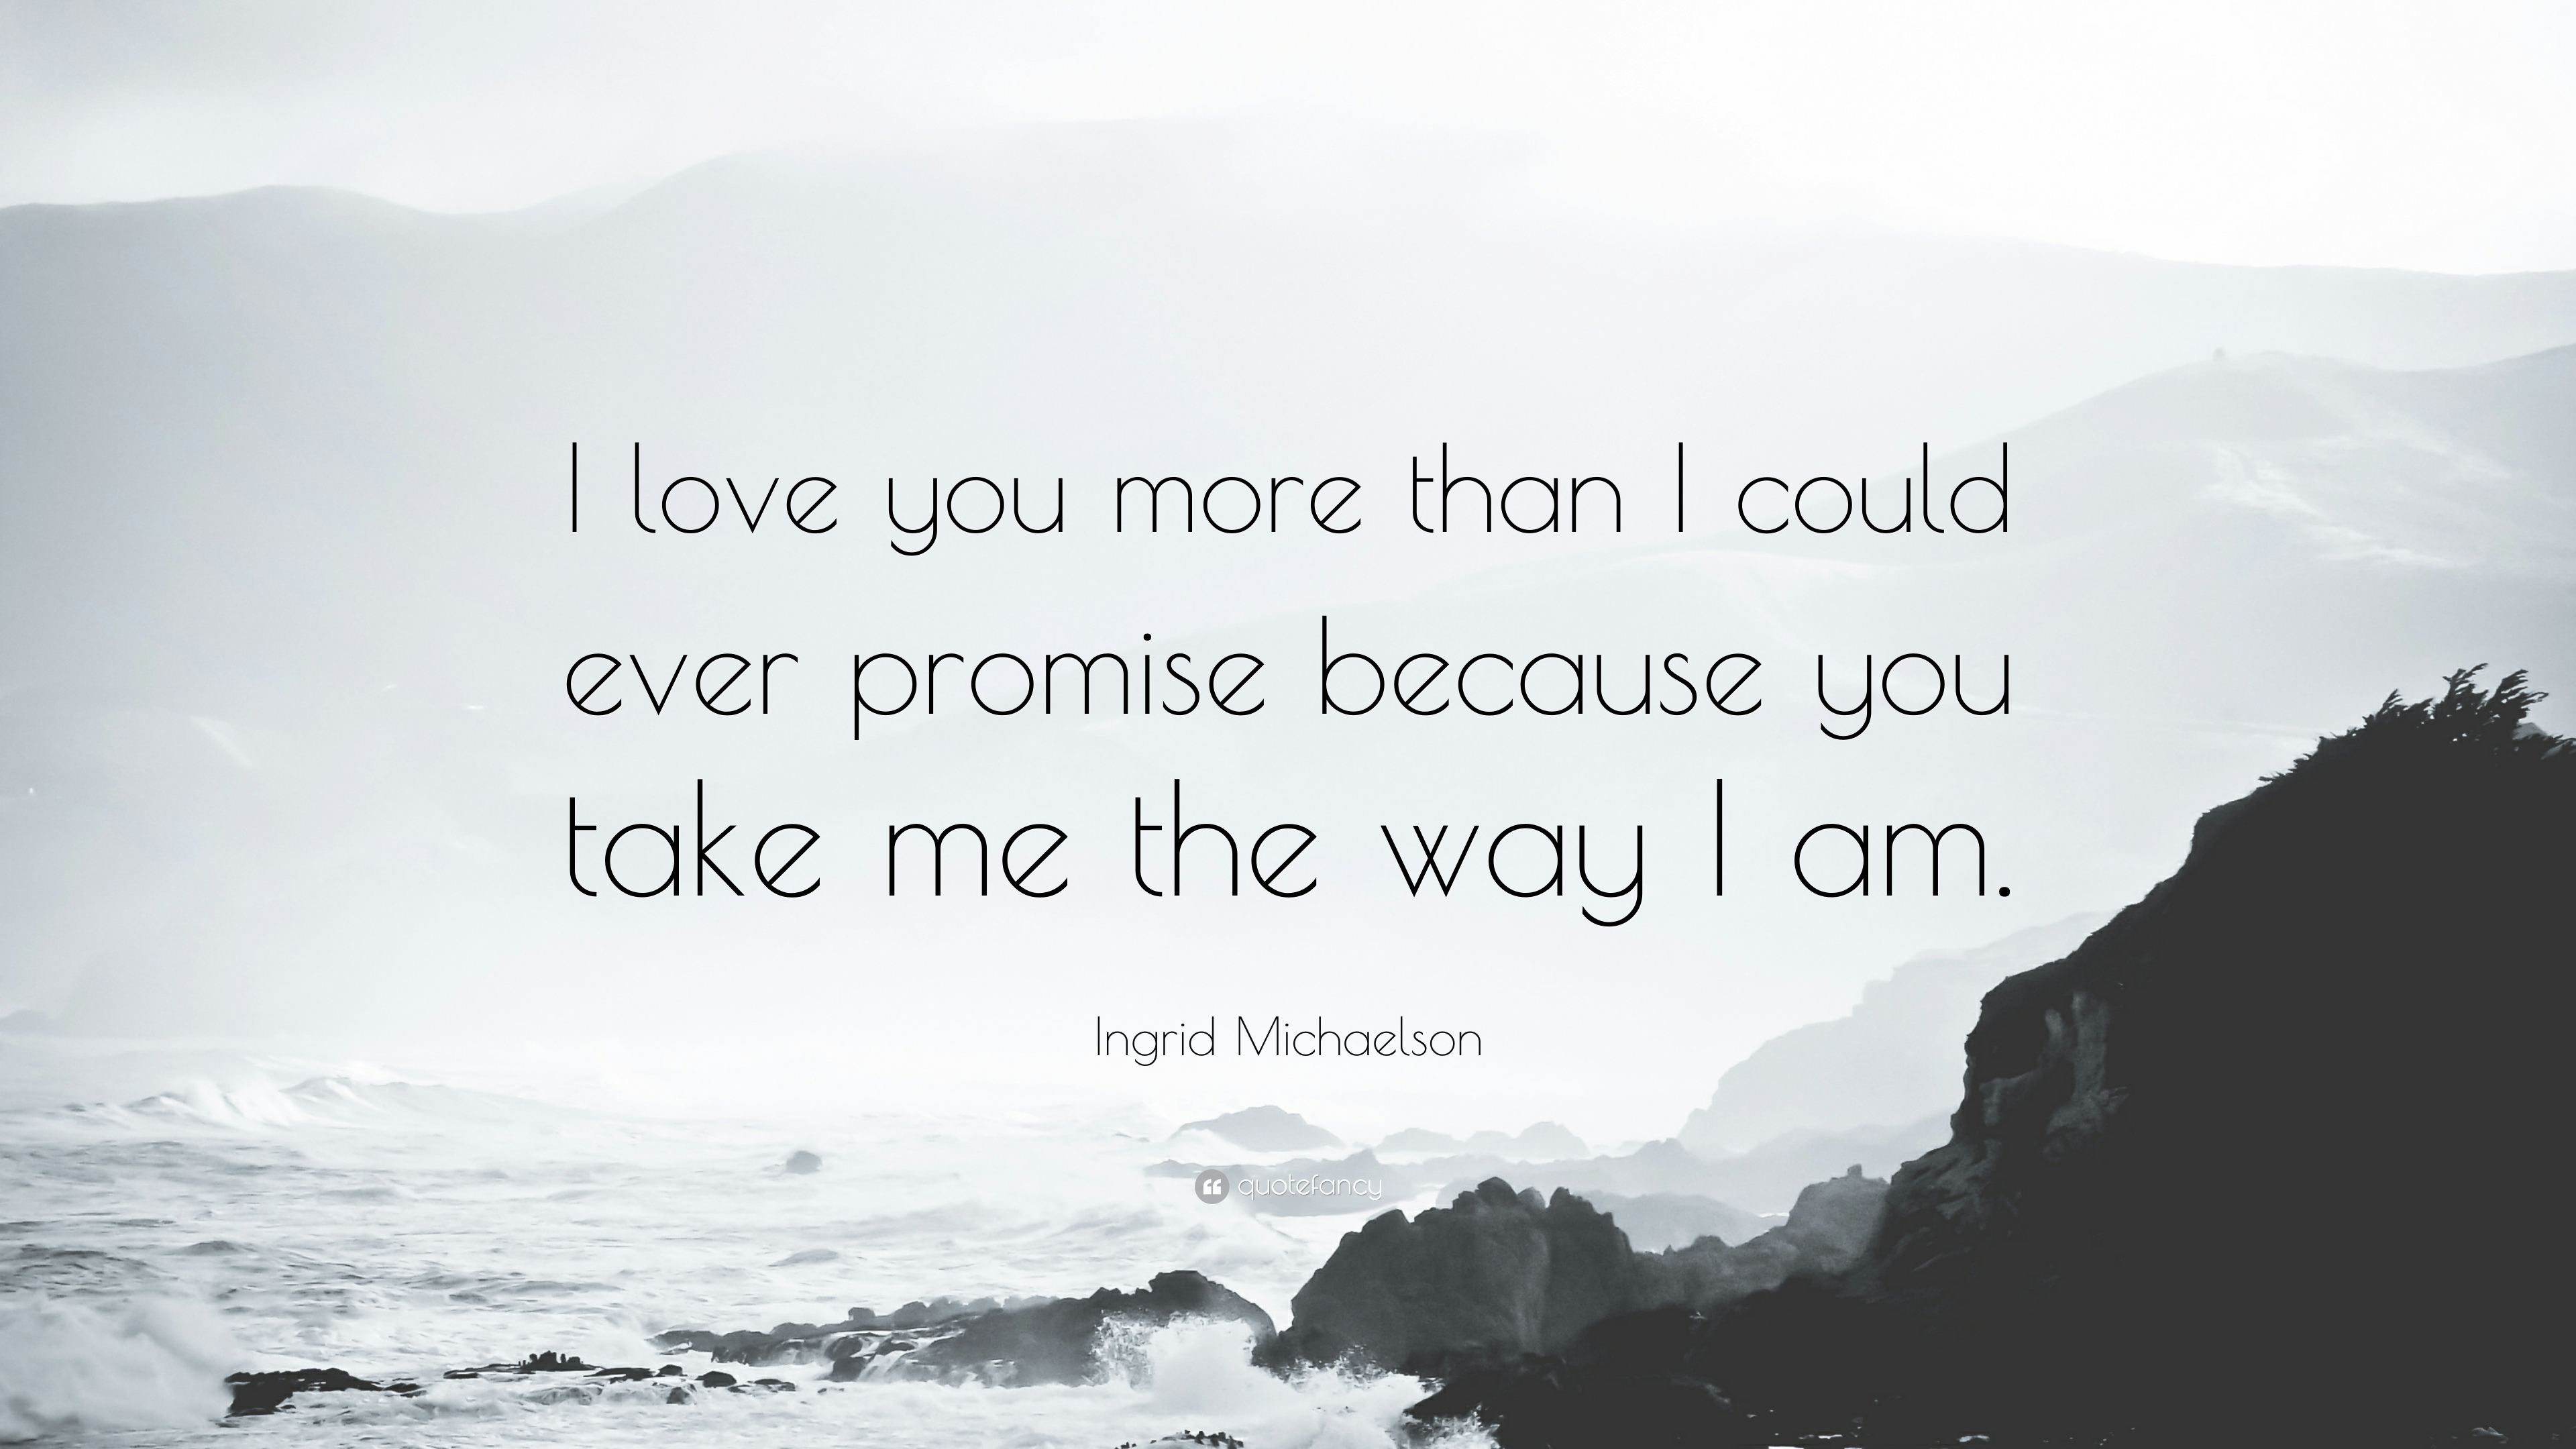 Ingrid Michaelson Quotes 24 Wallpapers Quotefancy